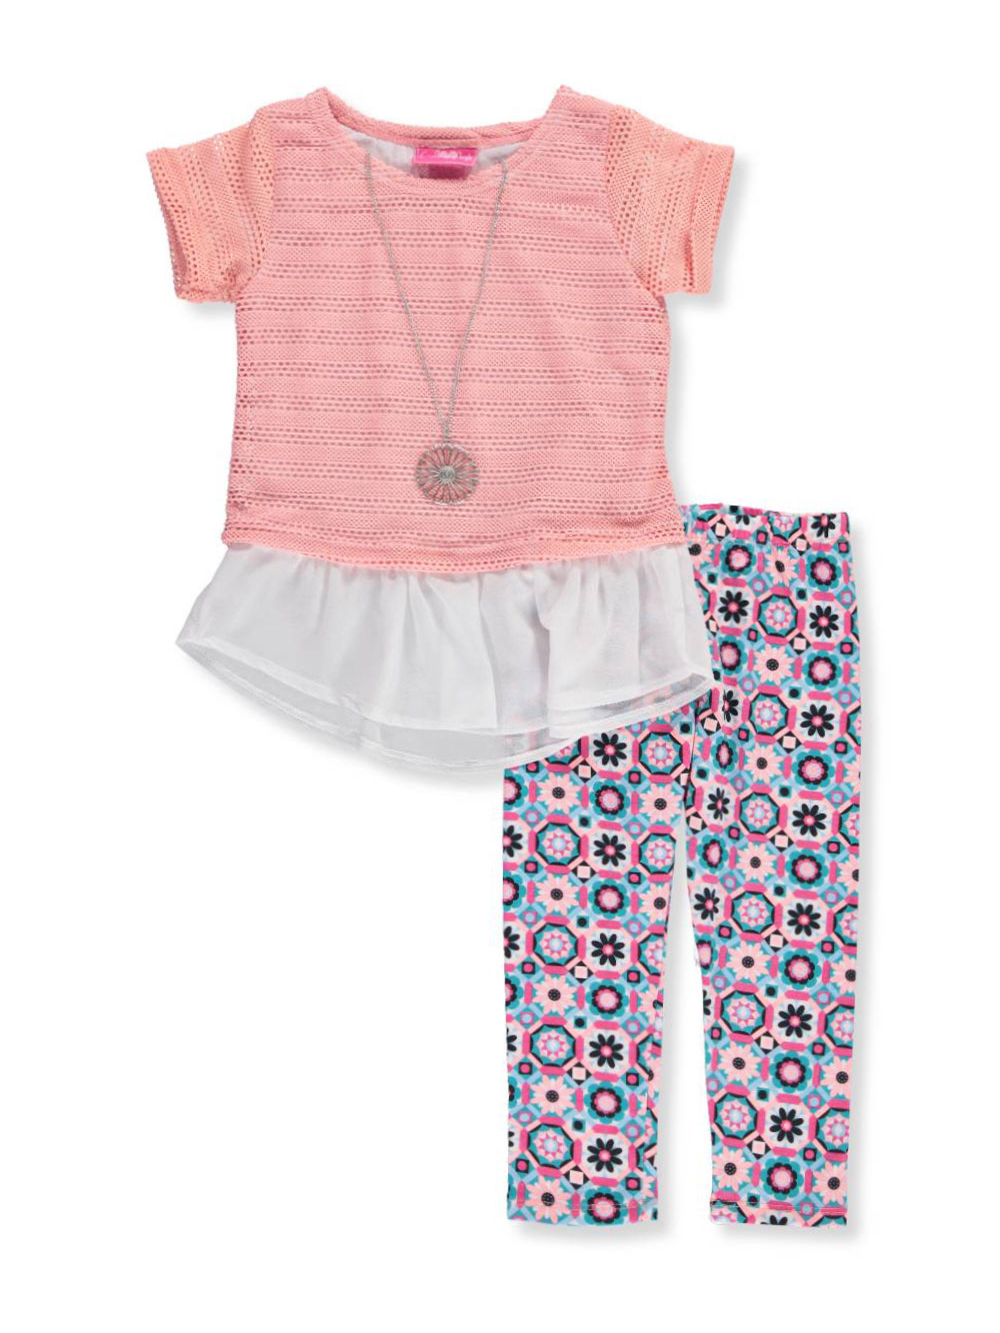 Girls Luv Pink Little Girls' 2-Piece Outfit with Necklace (Sizes 4 – 6X) - CookiesKids.com